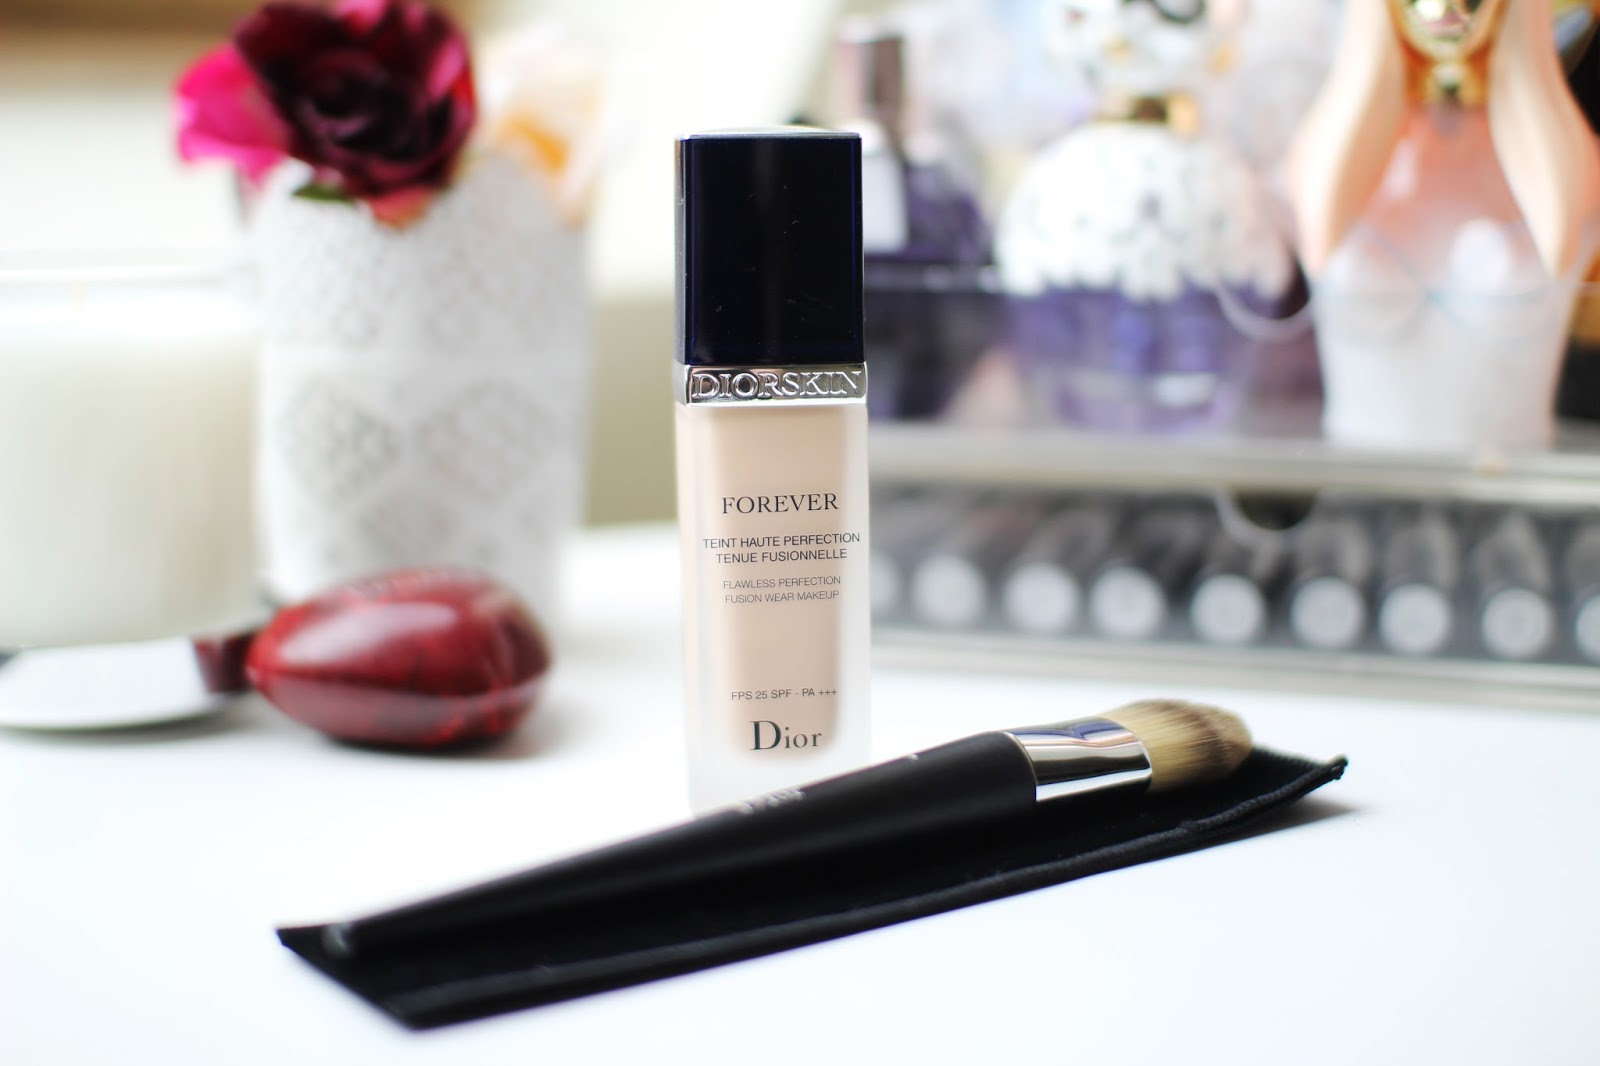 Dior Forever Foundation and Foundation Brush